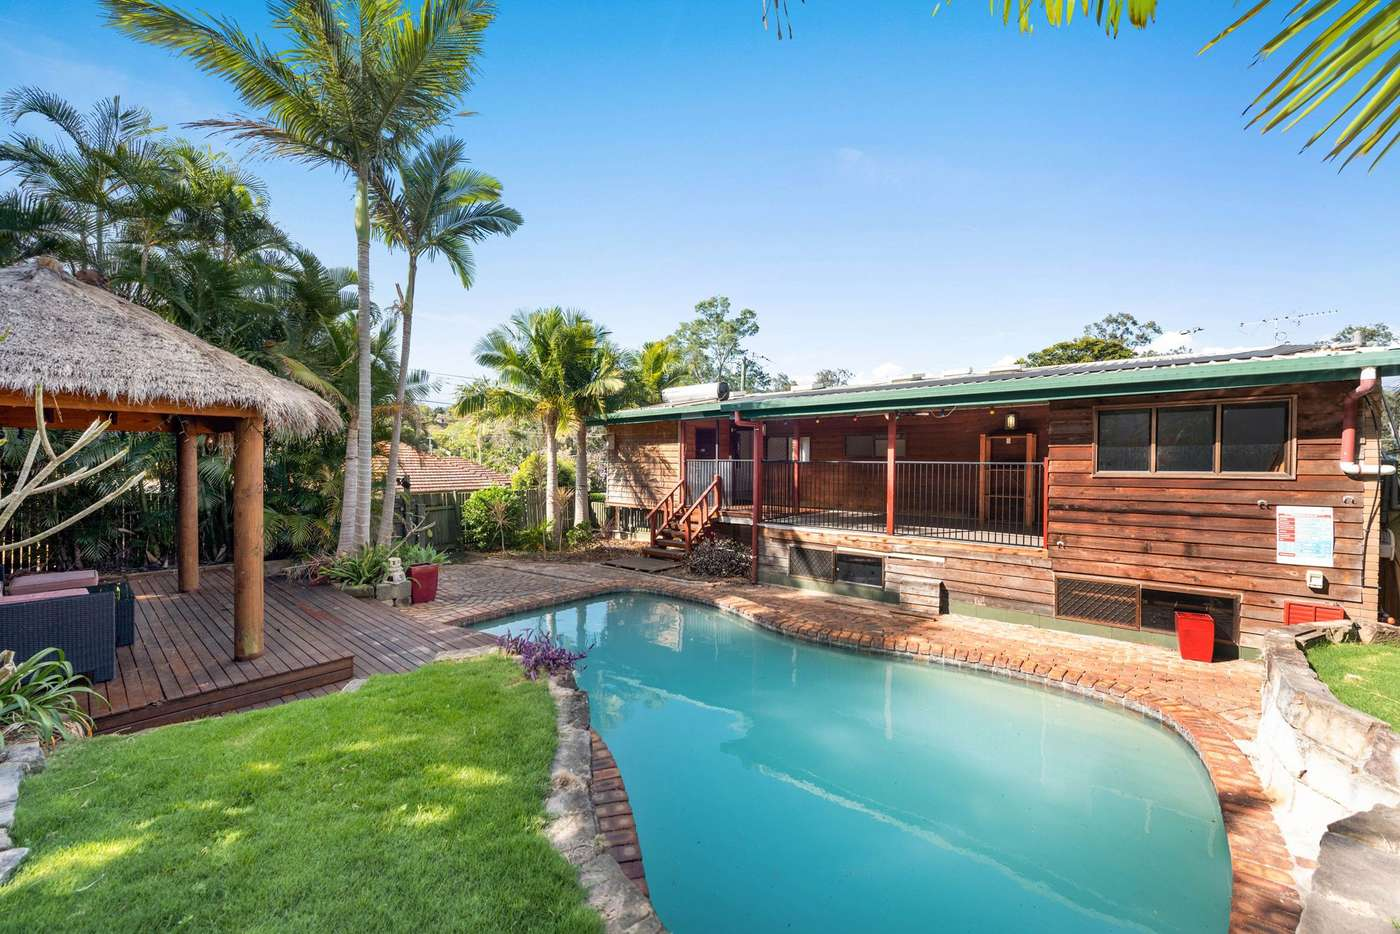 Main view of Homely house listing, 52 Settlement Road, The Gap QLD 4061